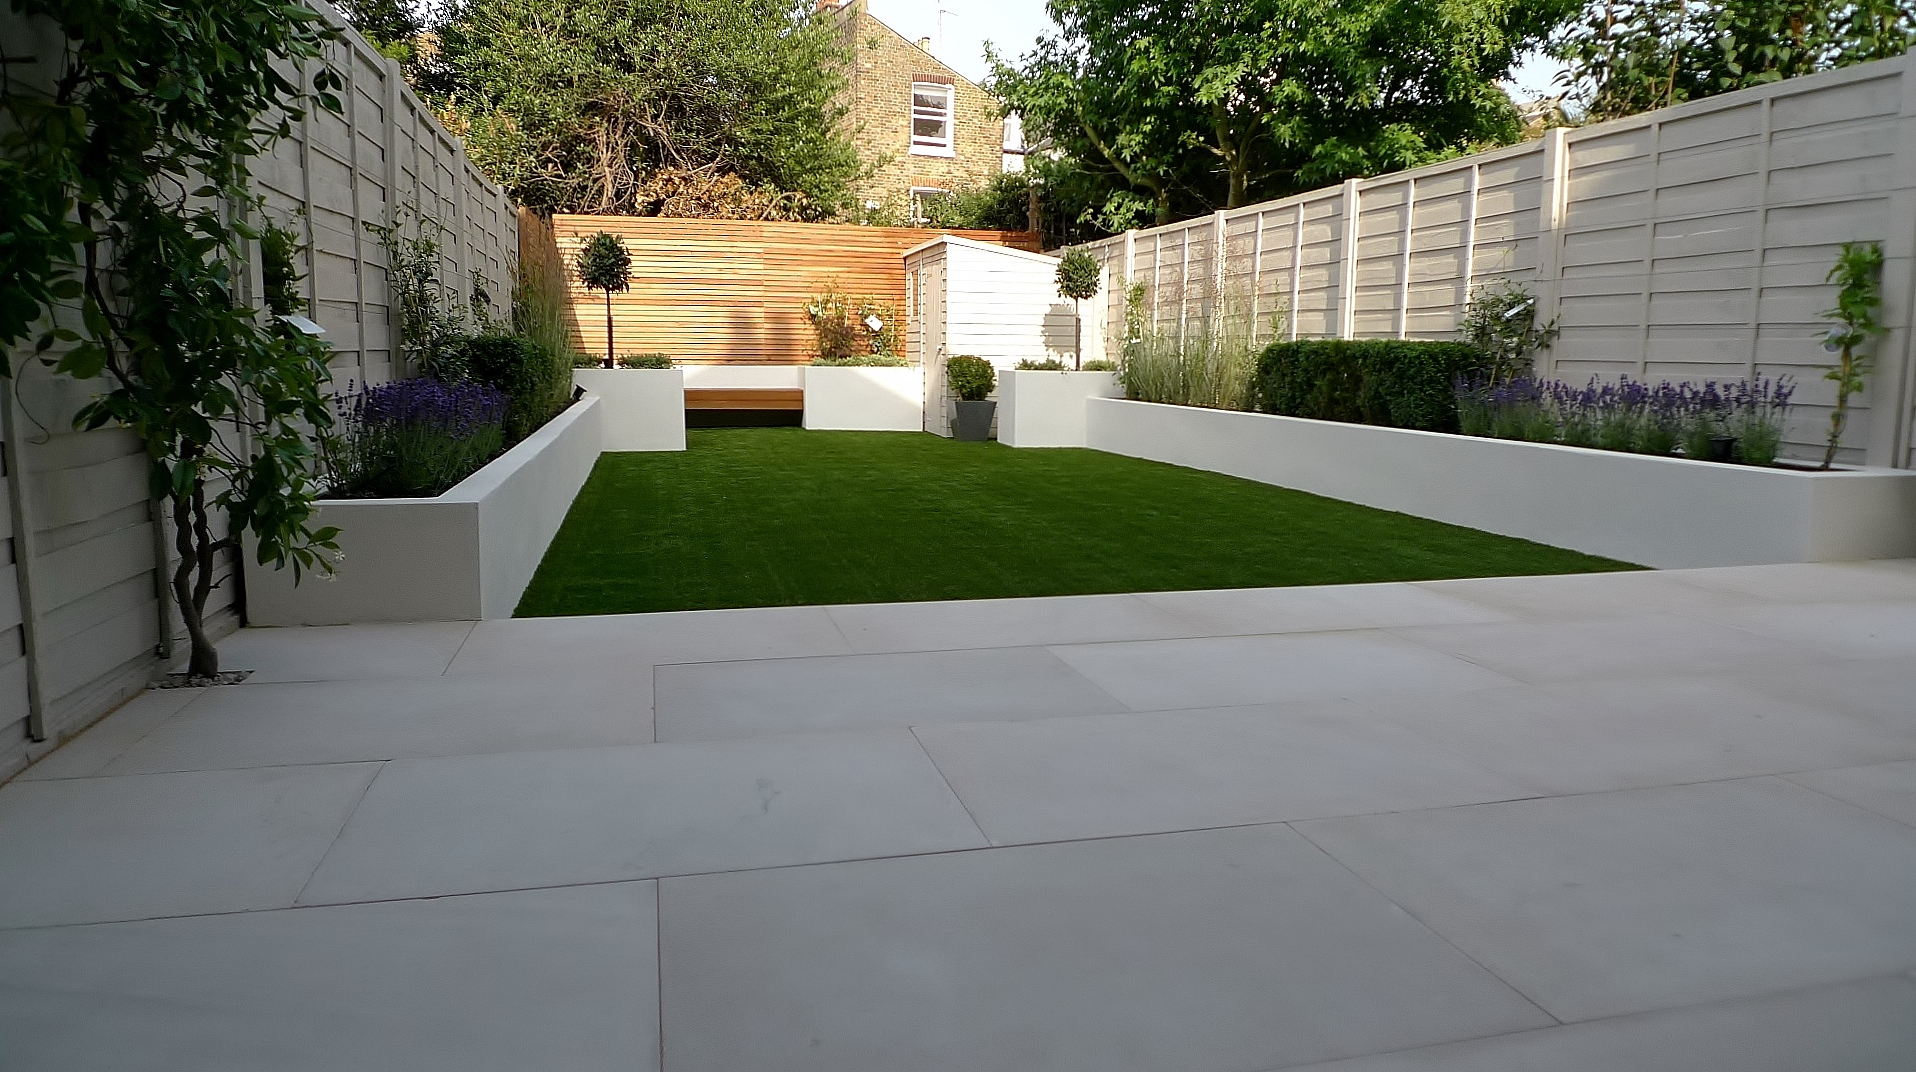 Modern balham garden design london garden design for Small garden design uk